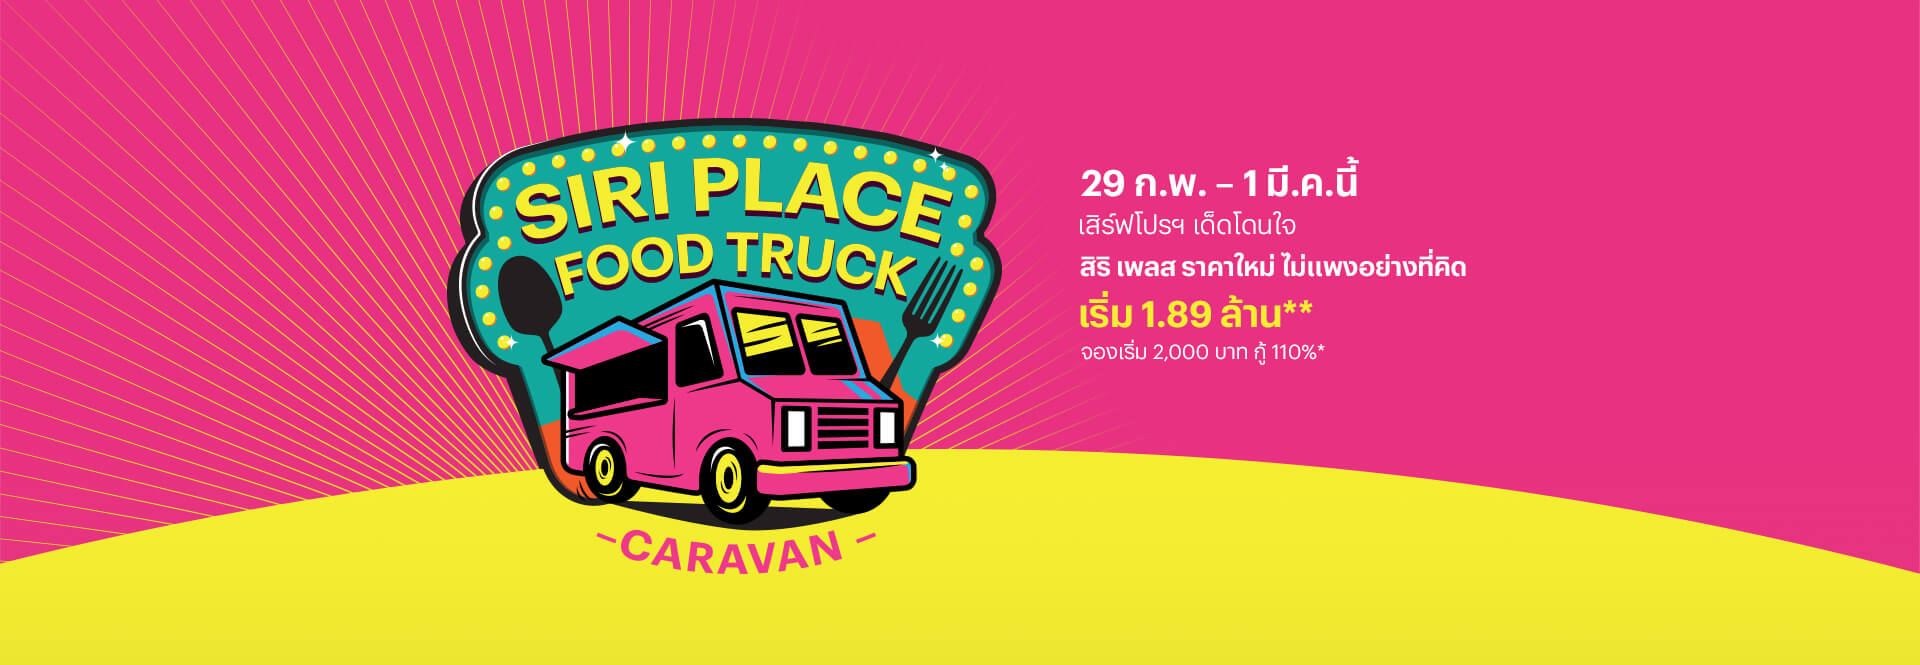 Siri Place Food Truck Caravan